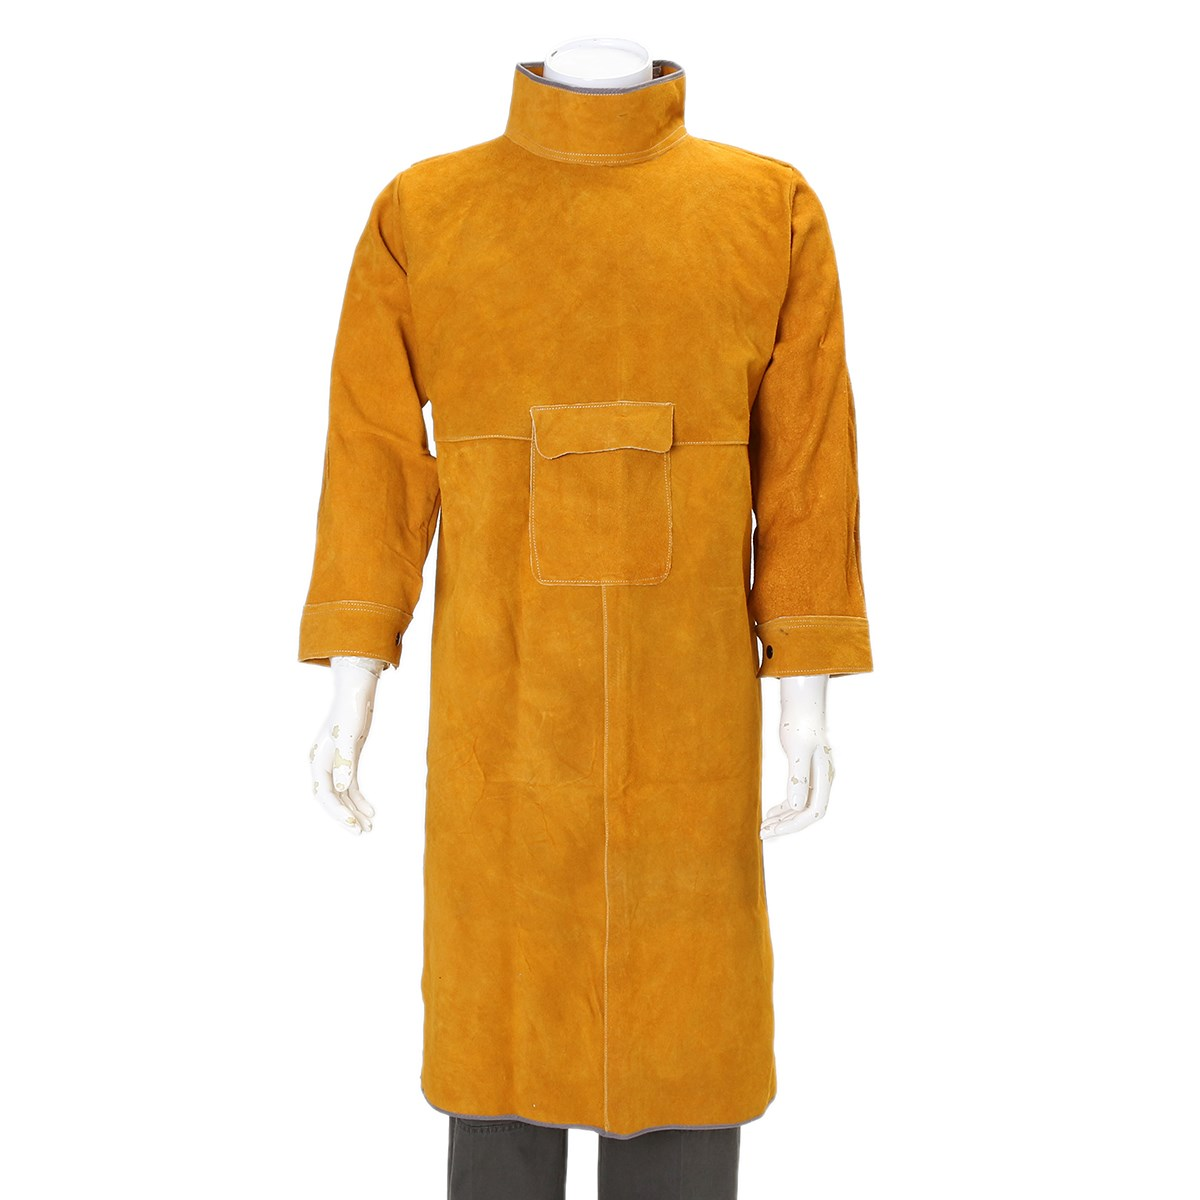 Durable Leather Welding Long Coat Apron Protective Clothing Apparel Suit Welder Workplace Safety Clothing welder machine plasma cutter welder mask for welder machine